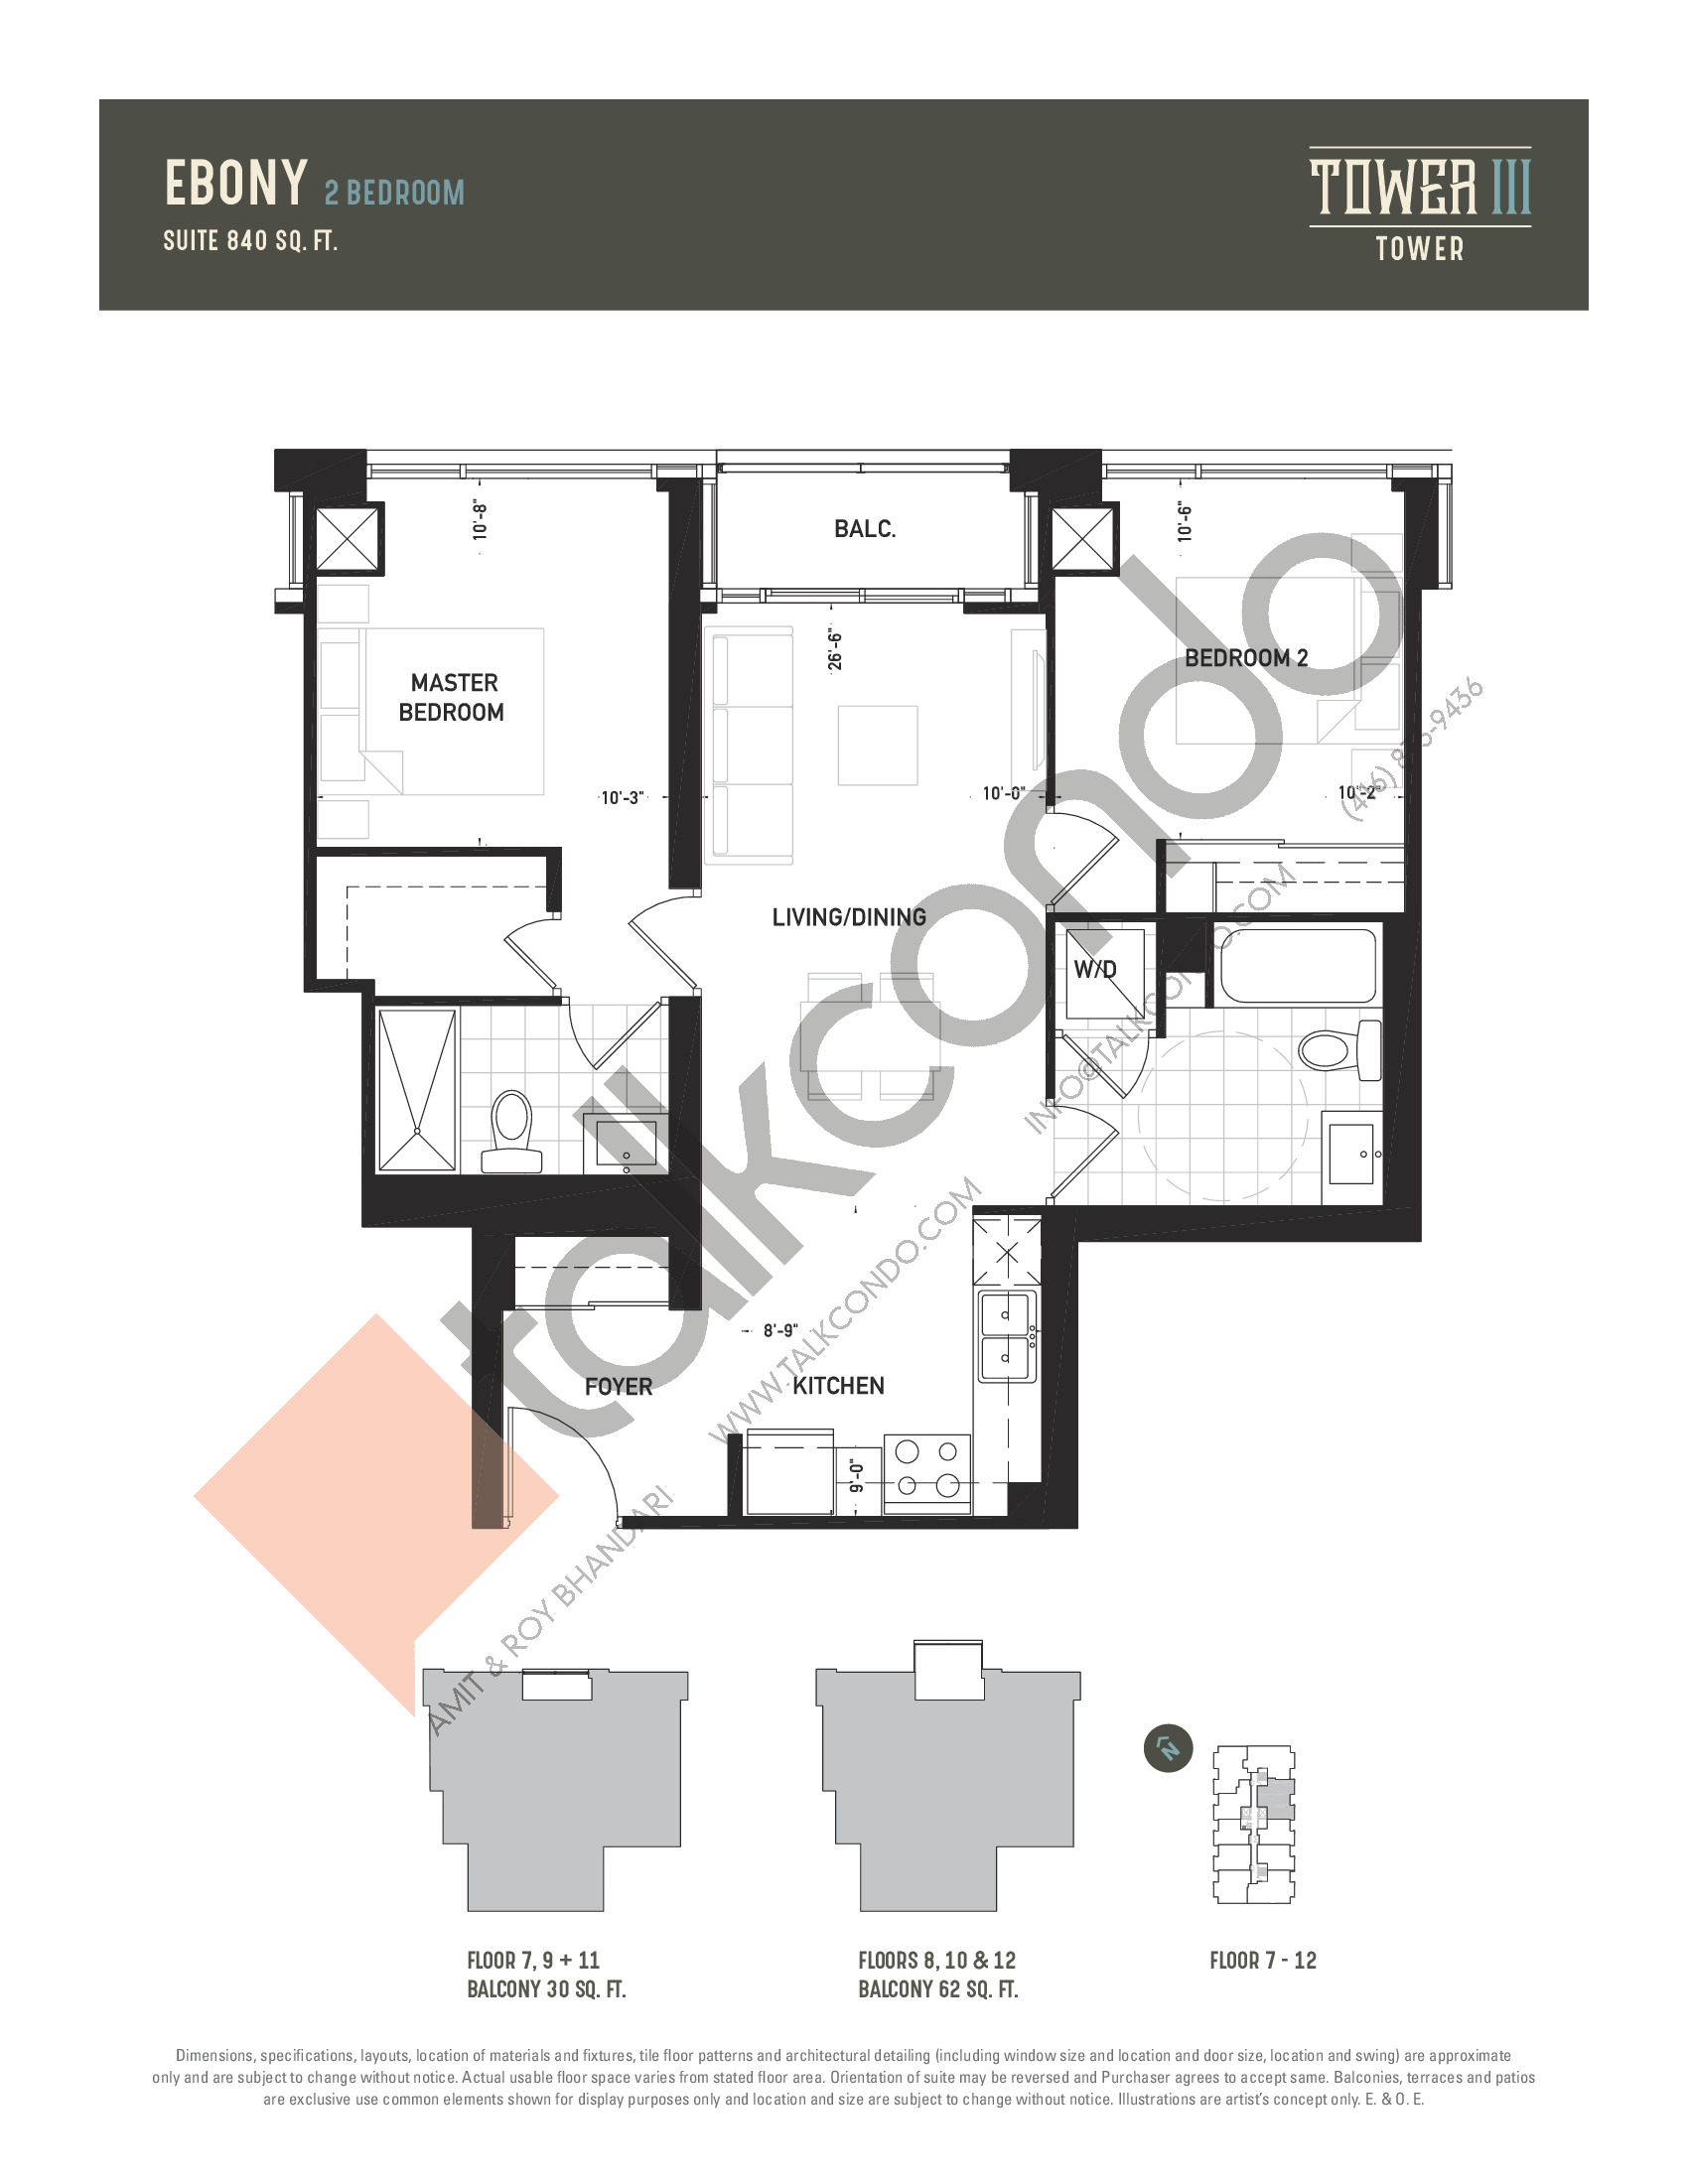 Ebony Floor Plan at Oak & Co. 3 Condos - 840 sq.ft